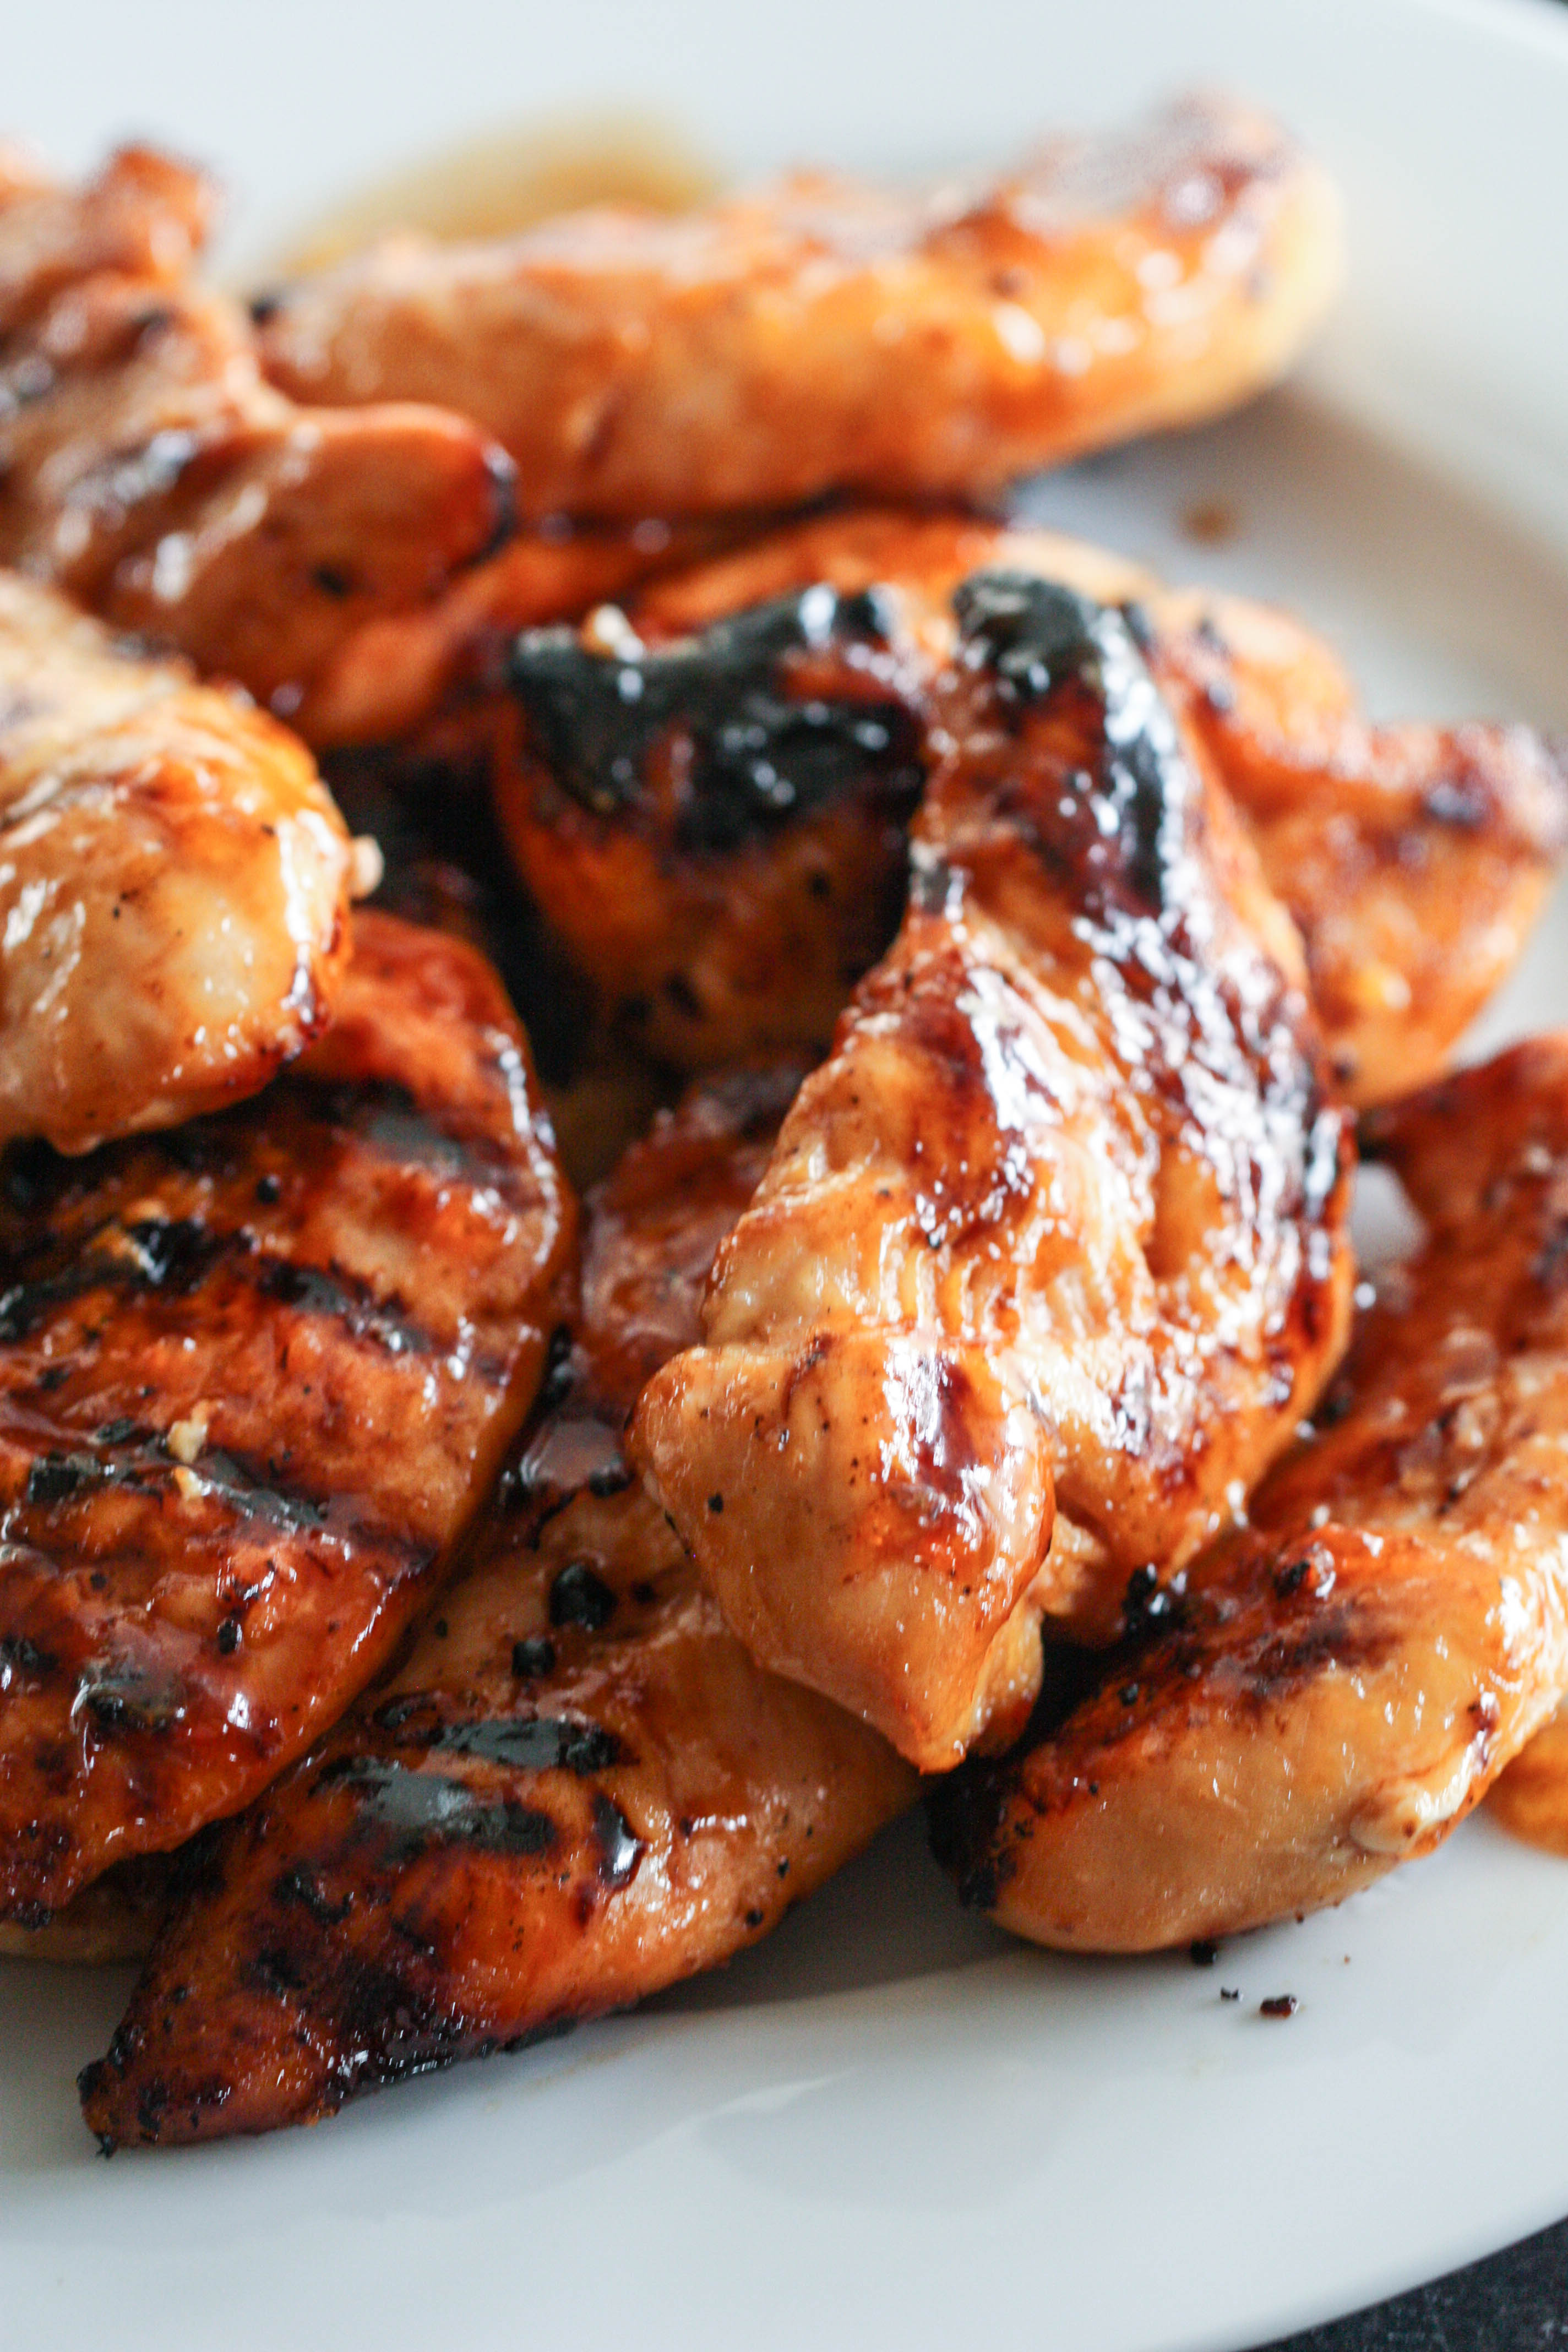 Barbecue Peach Chicken Pieces on a white plate